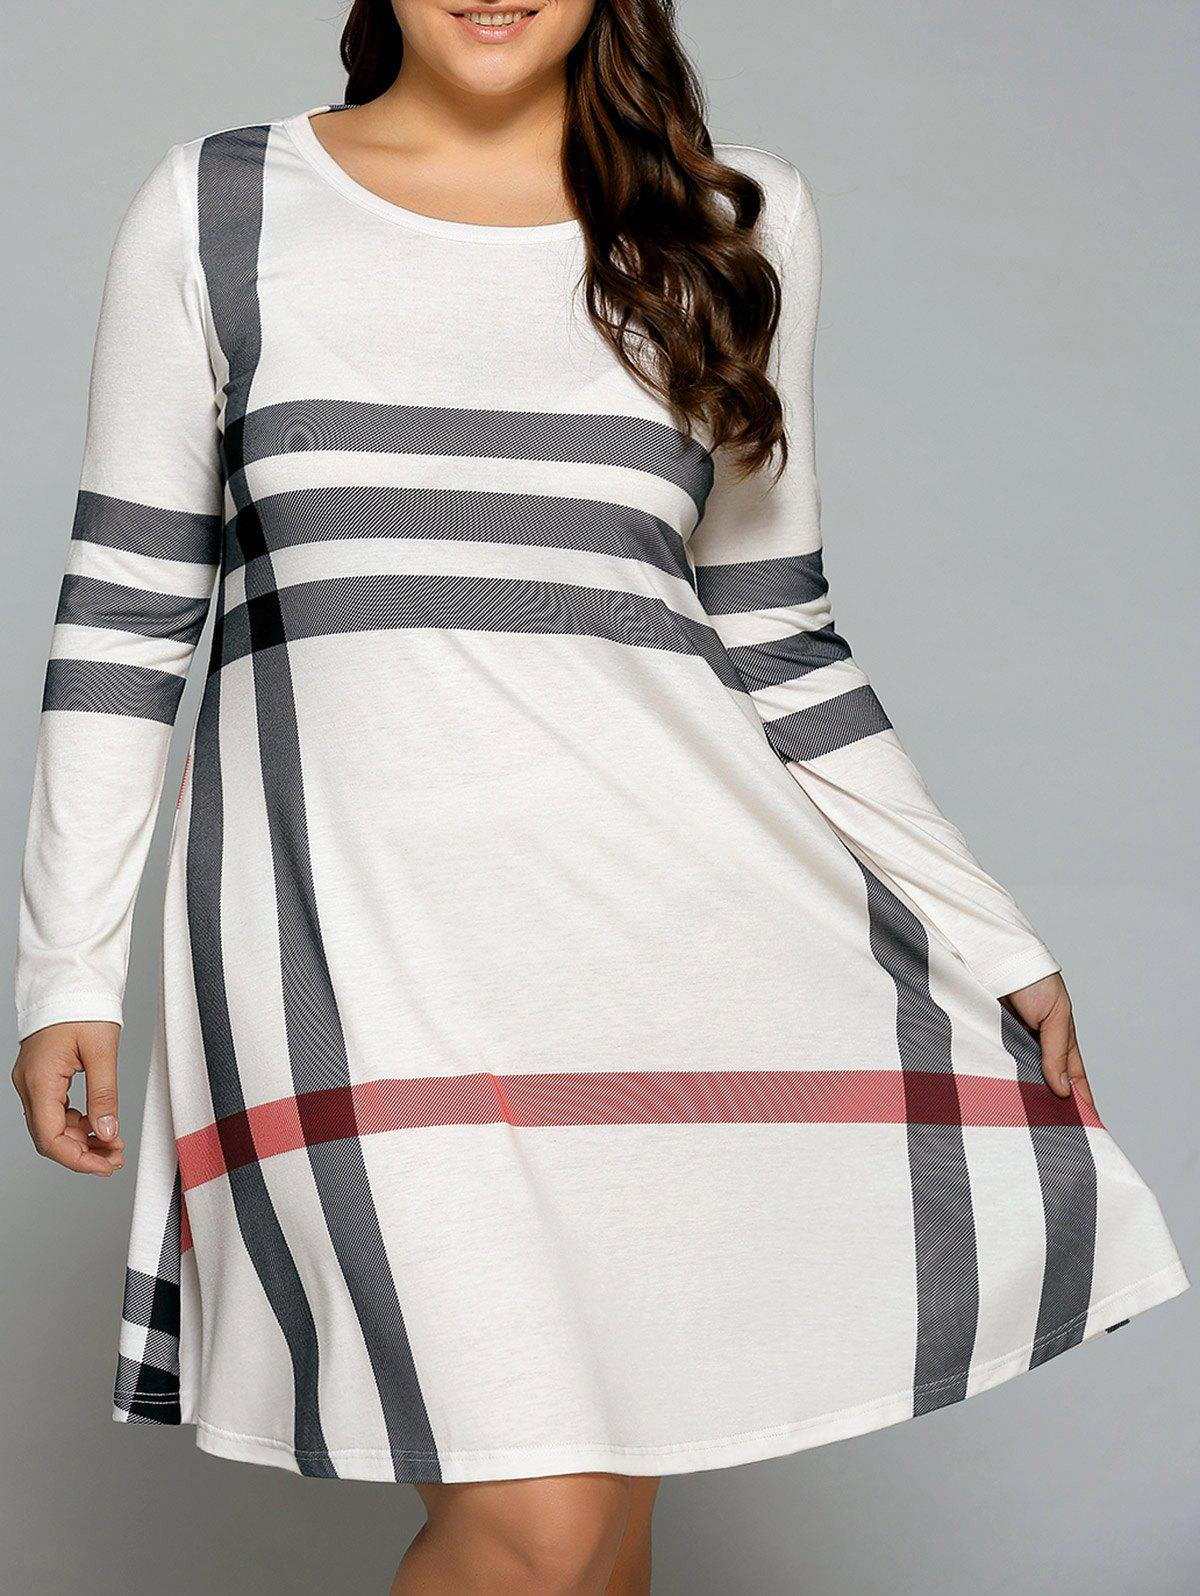 2018 plus size striped long sleeve t-shirt dress off white xl in